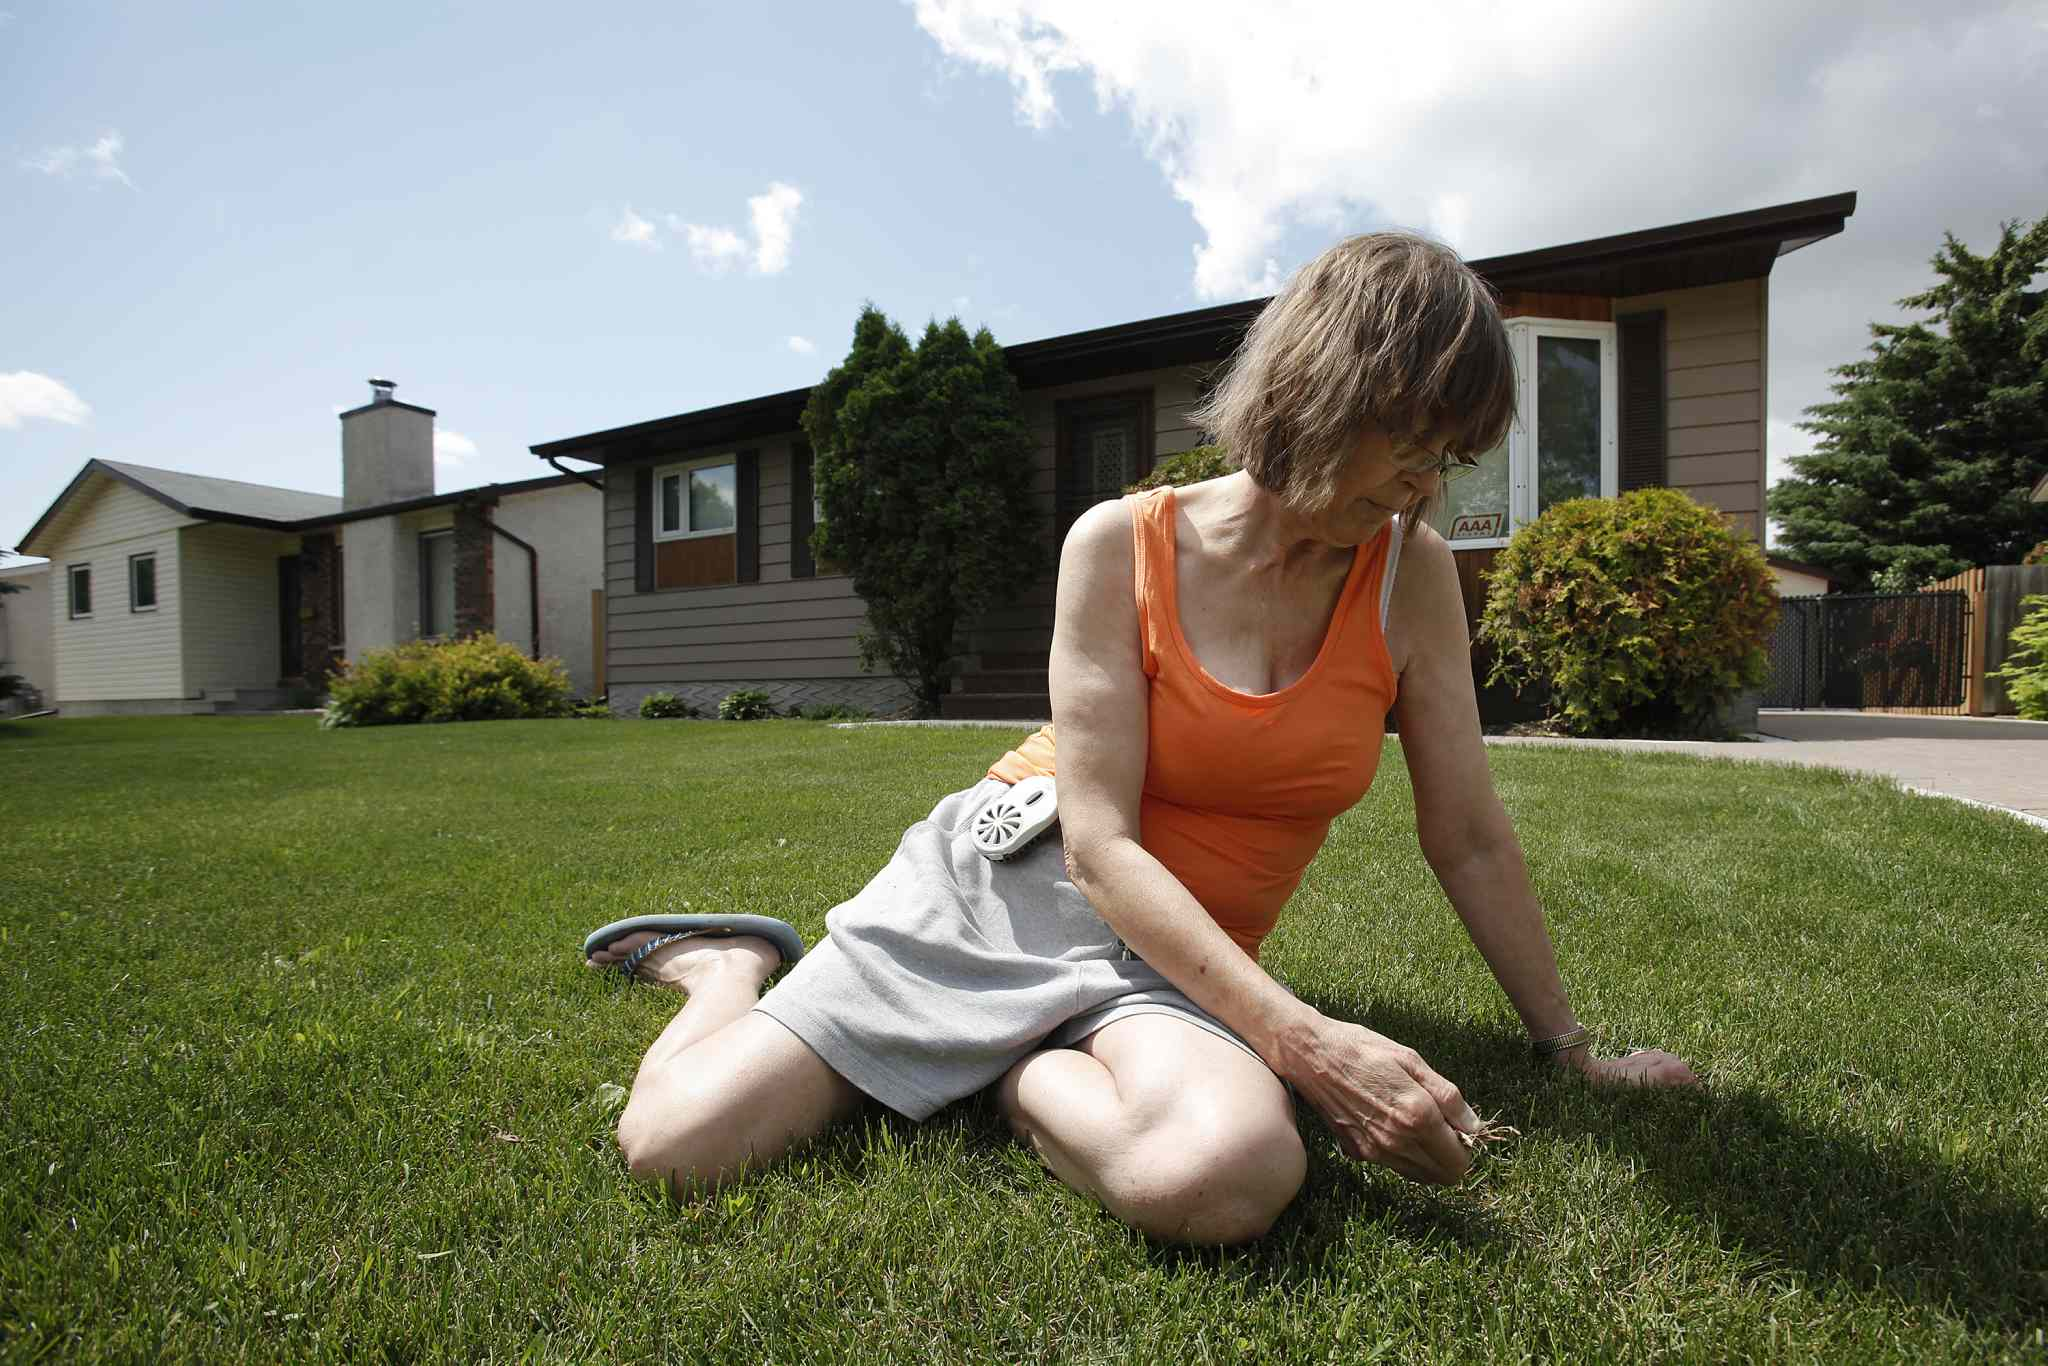 Maples resident Debbie Lynch weeds her lawn while wearing a mosquito deterrent on her hip.